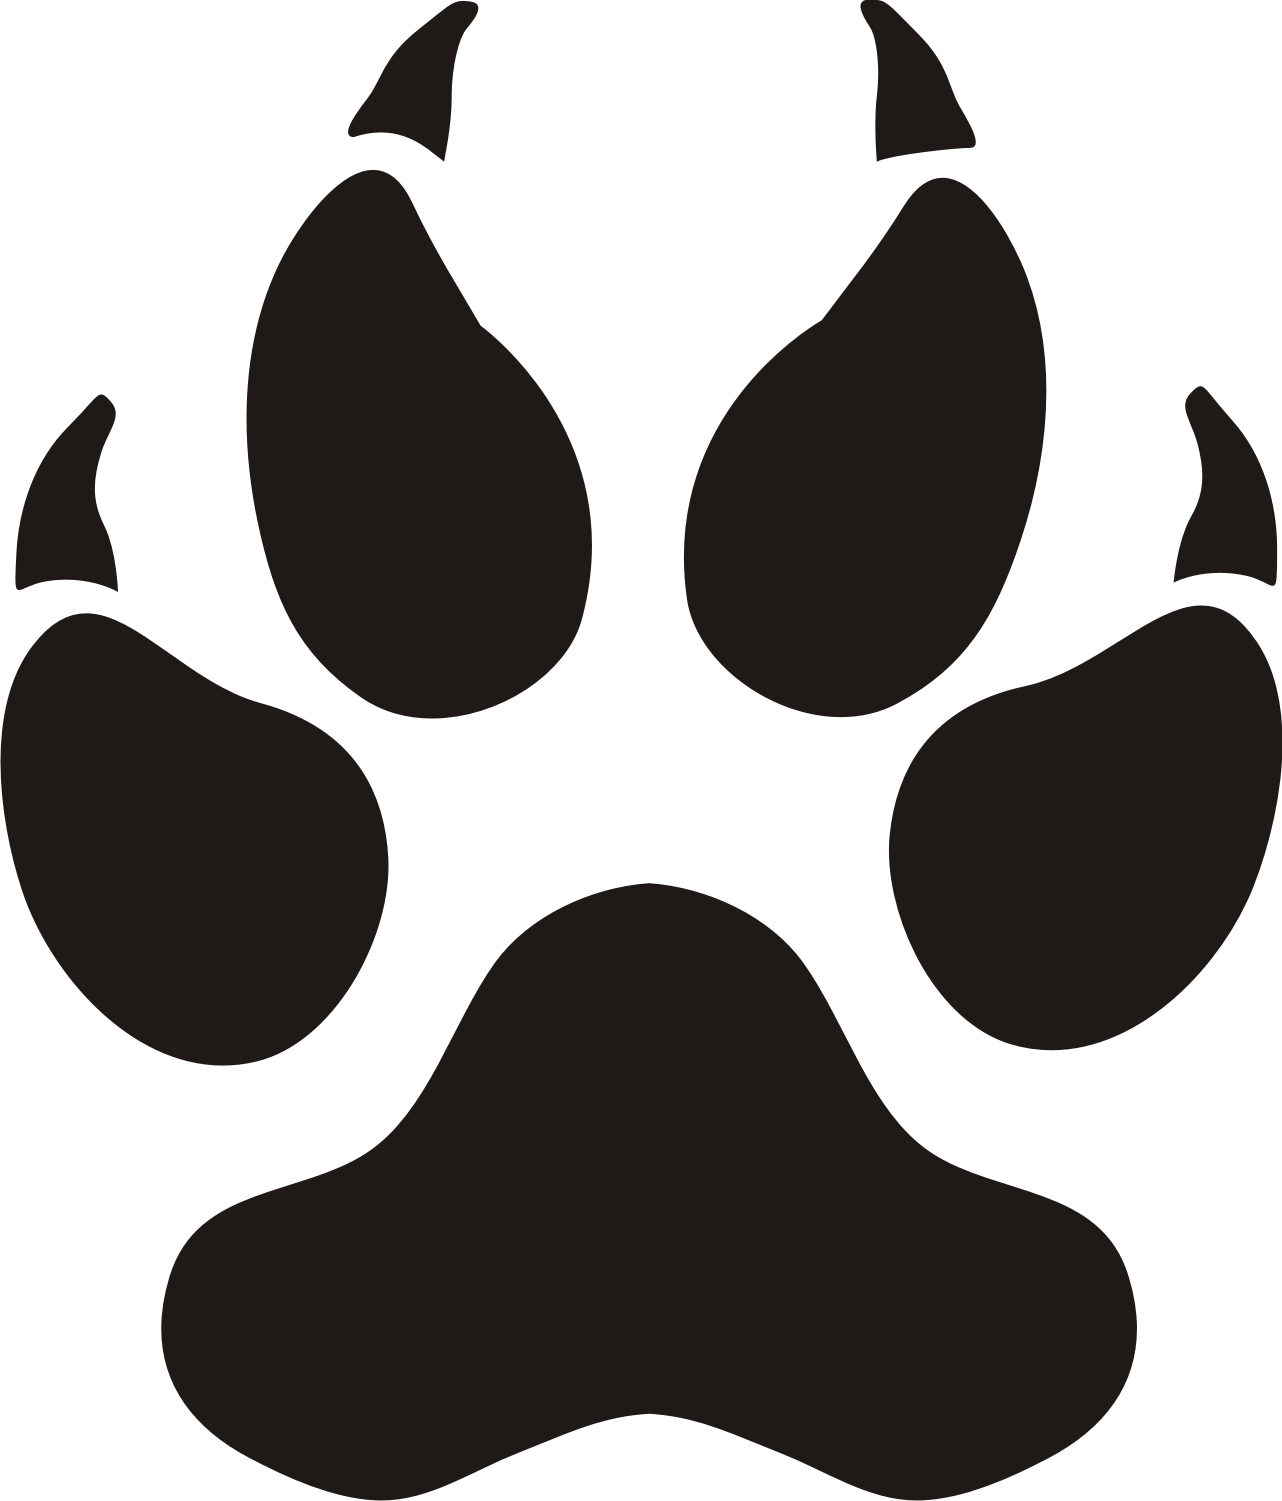 Labels Dogs Mascots Paws Vector Clip Art Posted By Anthony Joe At 4 50